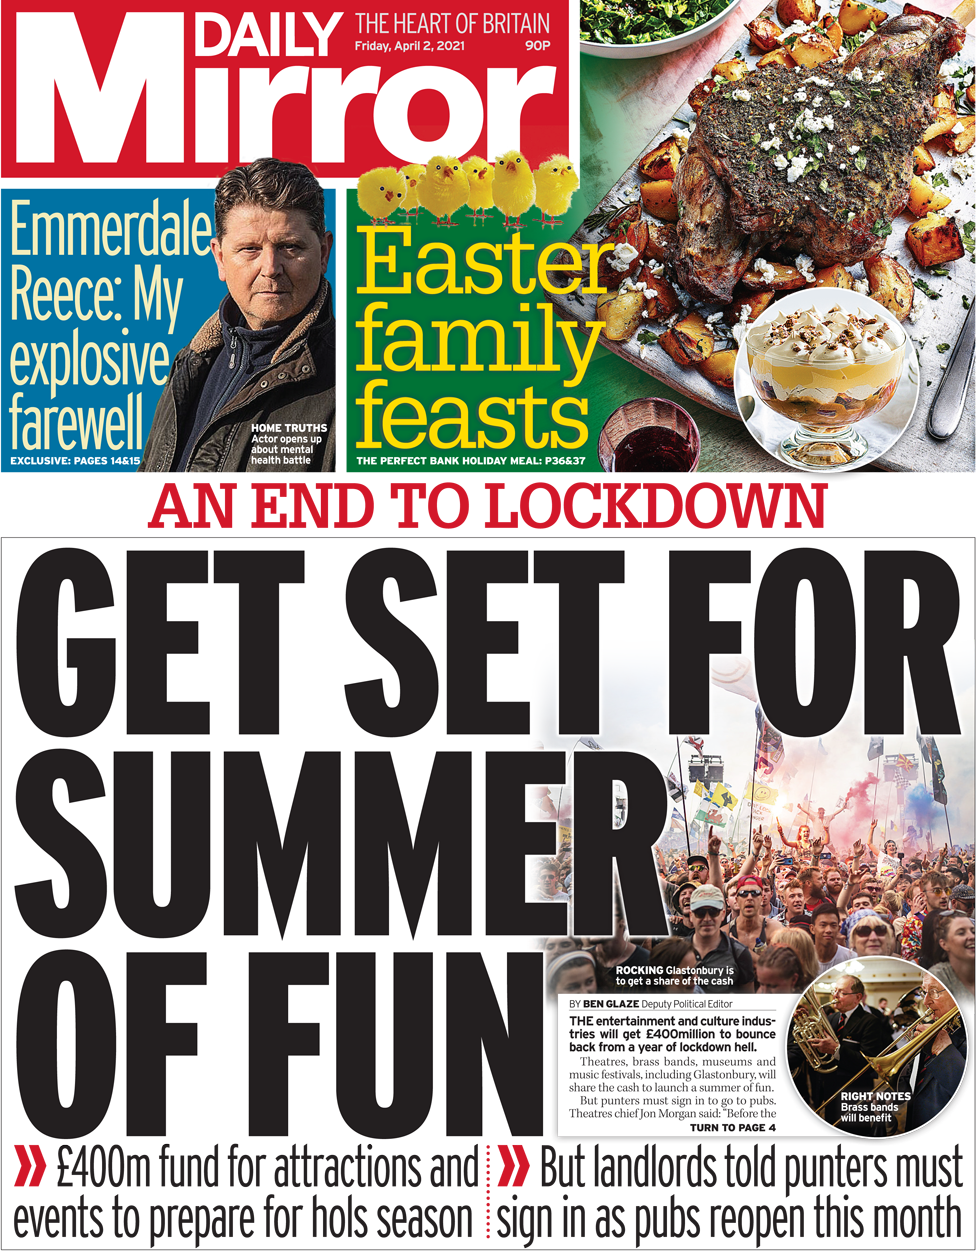 The Daily Mirror front page 2 April 2021